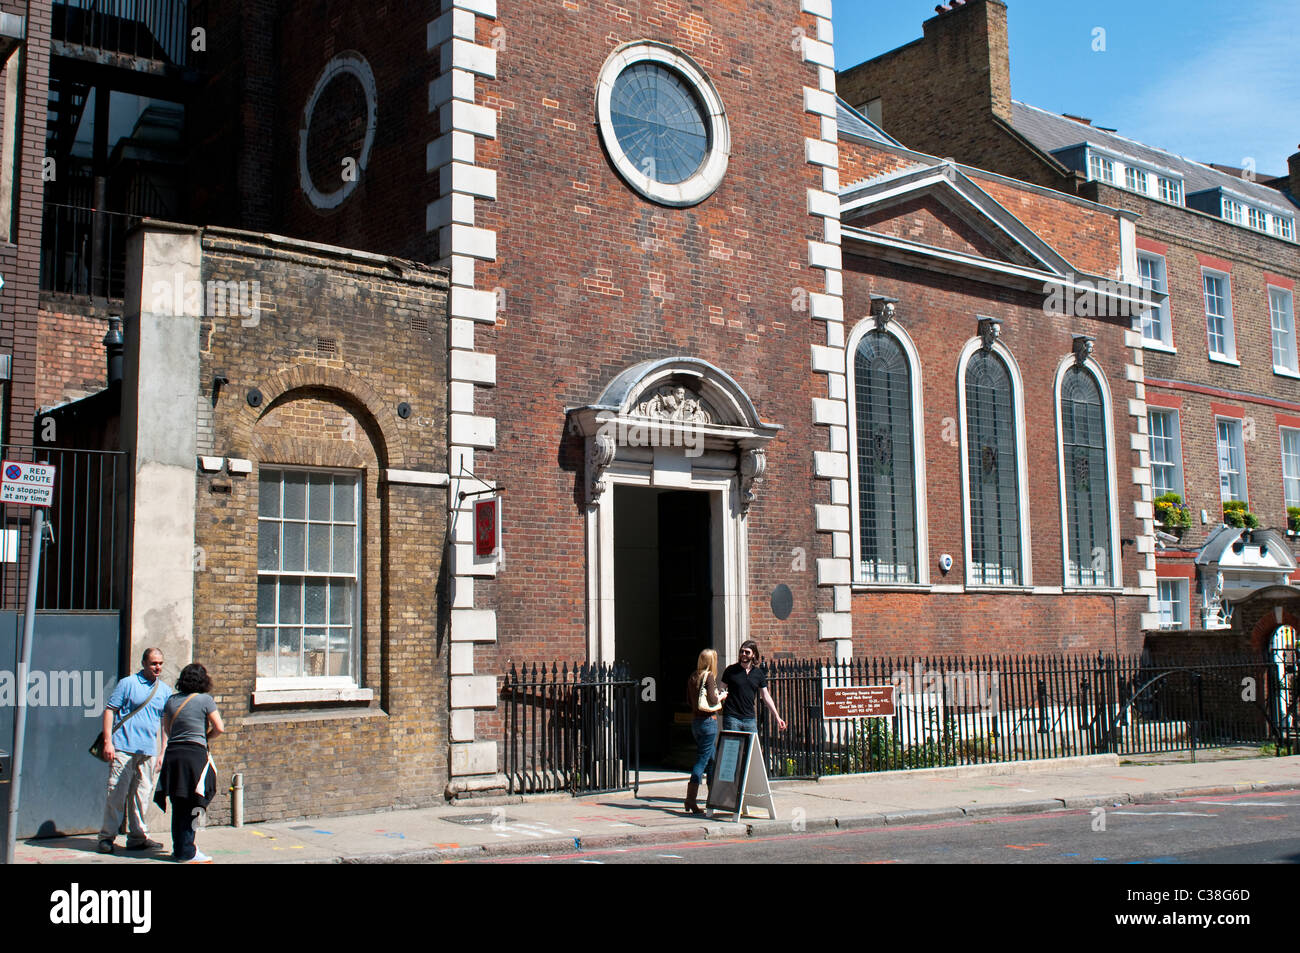 Old Operating Theatre Museum, St Thomas Street, London, UK - Stock Image